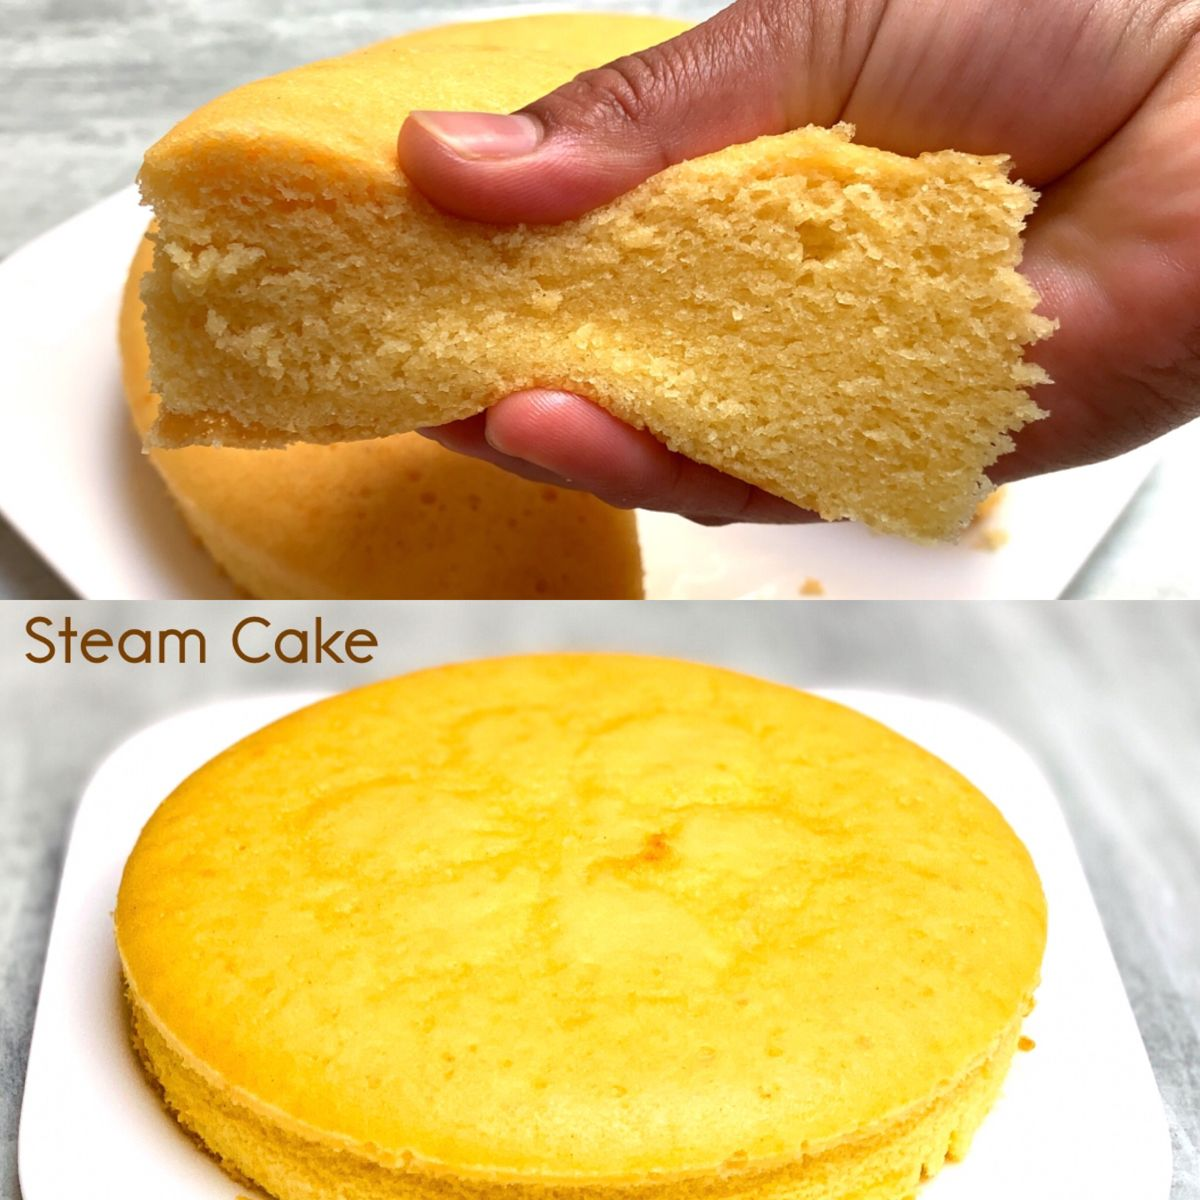 Steam Cake Or Steamed Condensed Milk Cake In 2020 Steamed Cake Steam Cake Recipe Condensed Milk Cake